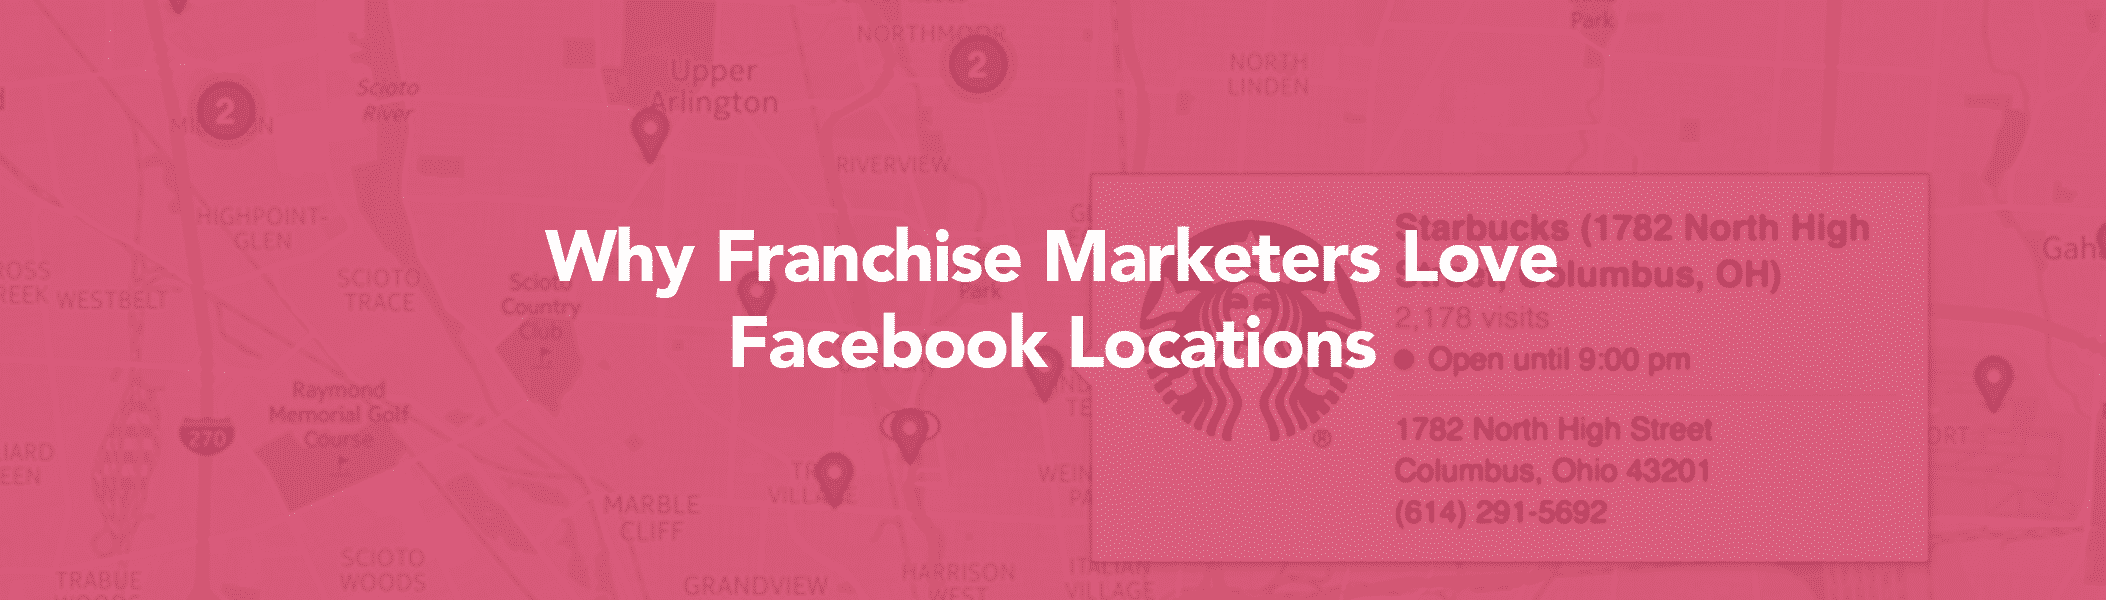 Facebook location for franchises